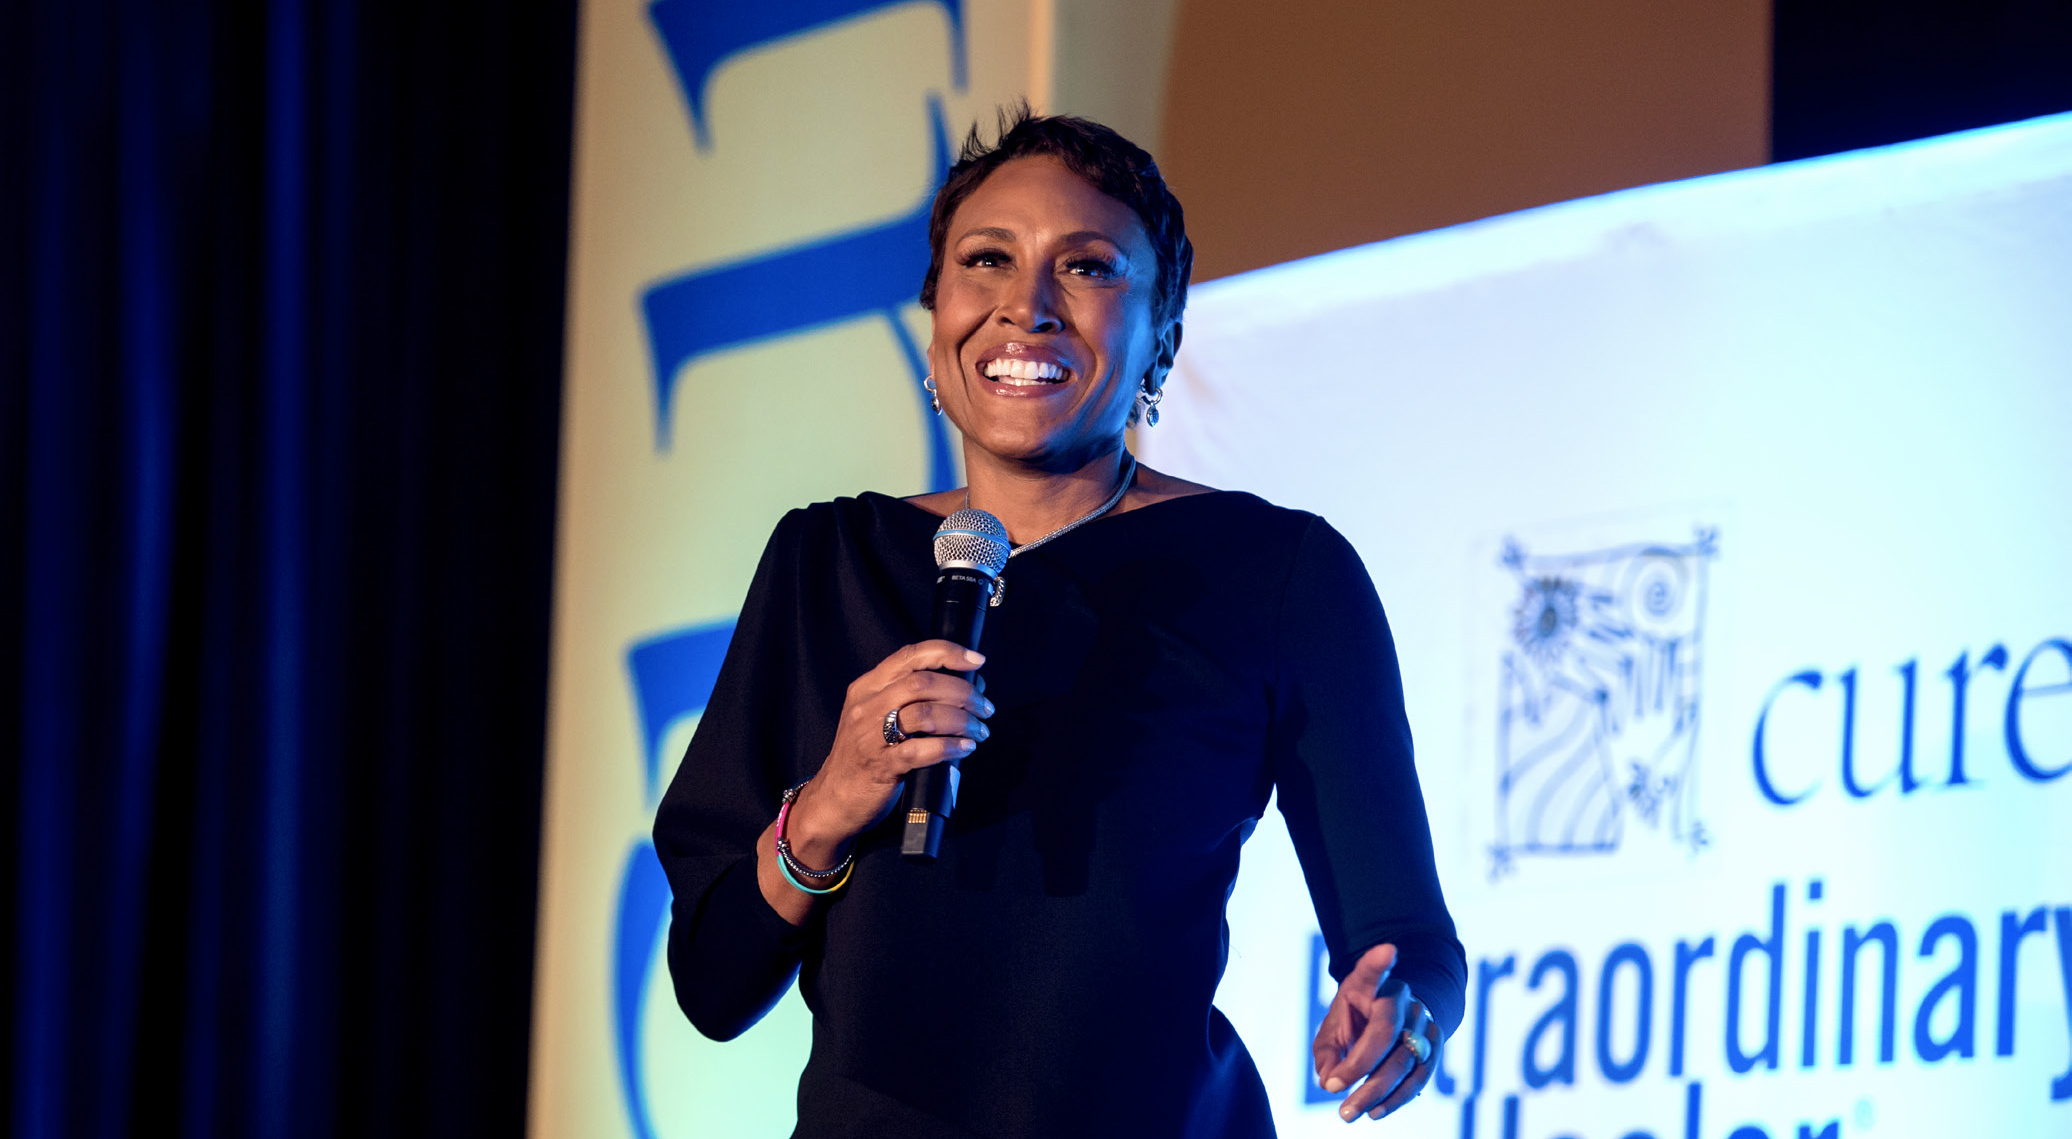 ROBIN ROBERTS speaks